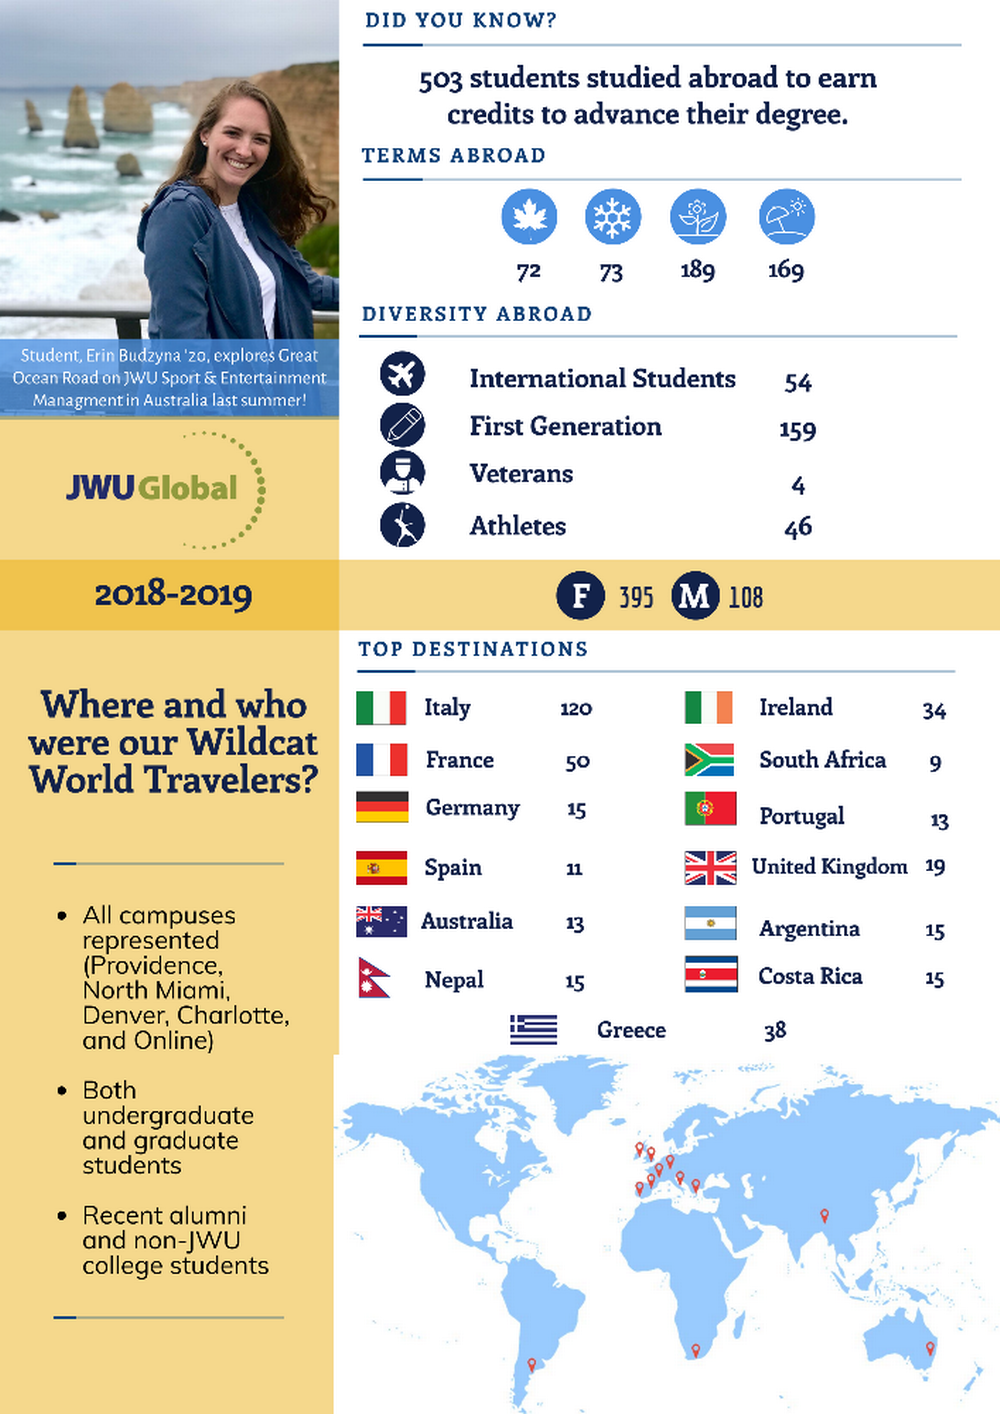 Wildcat World Travelers 18-19